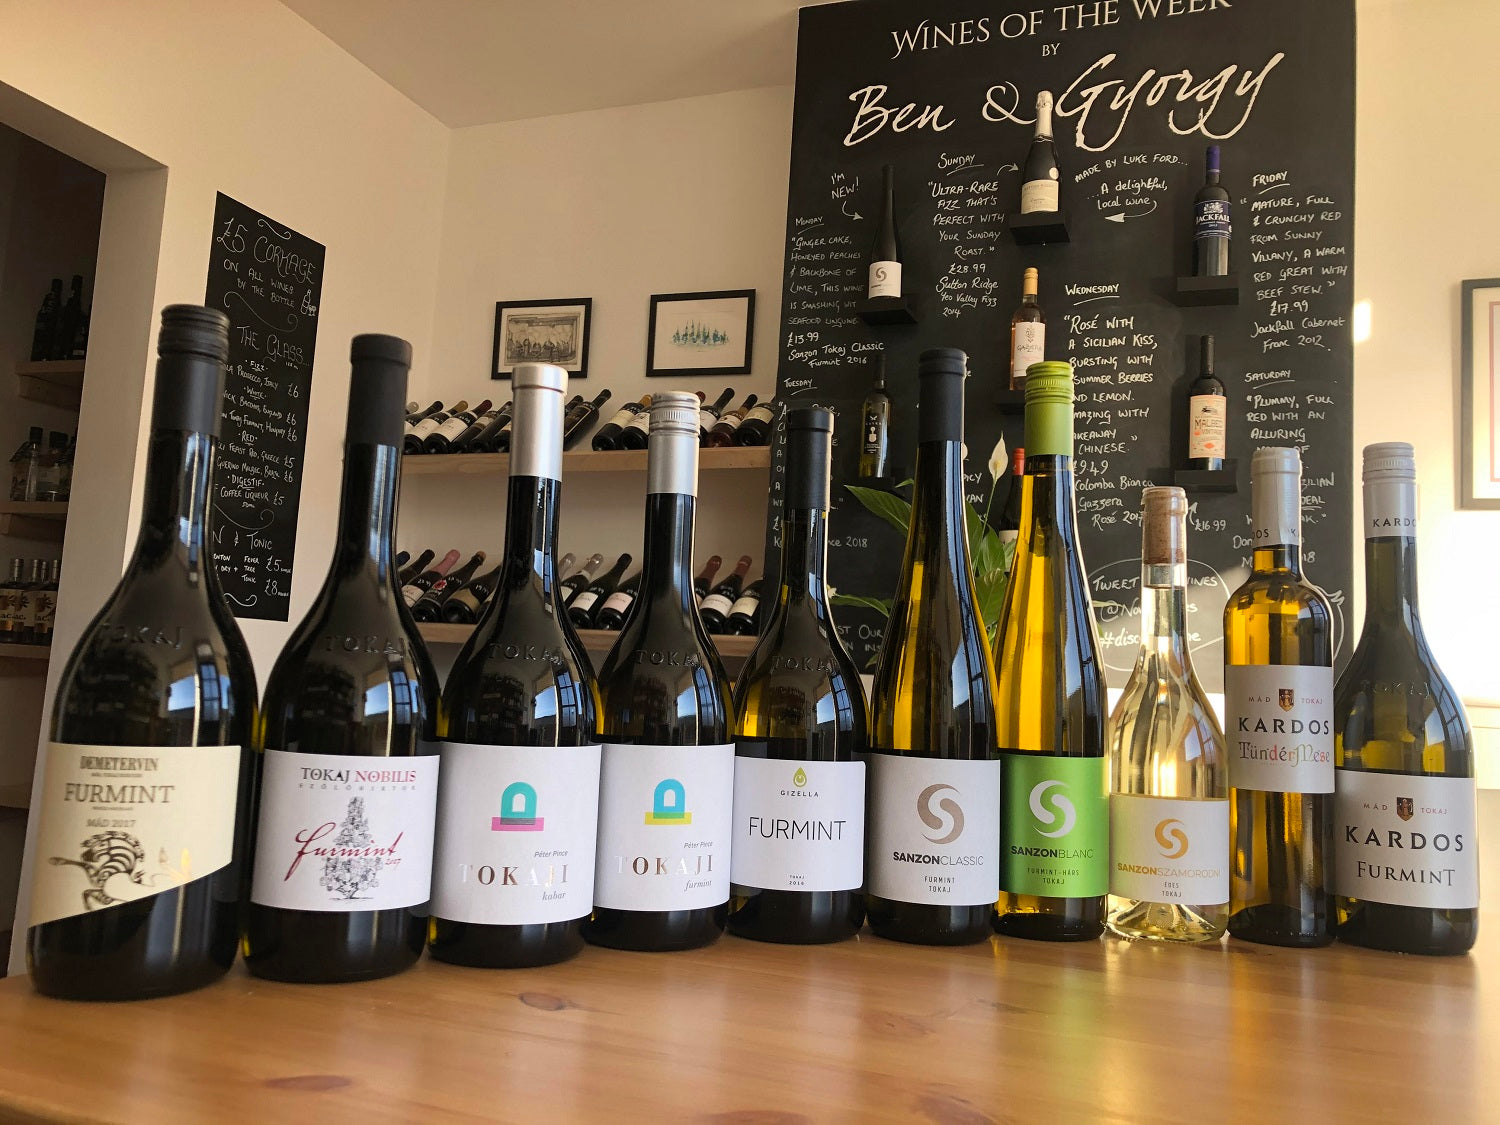 Furmint February selection of wines